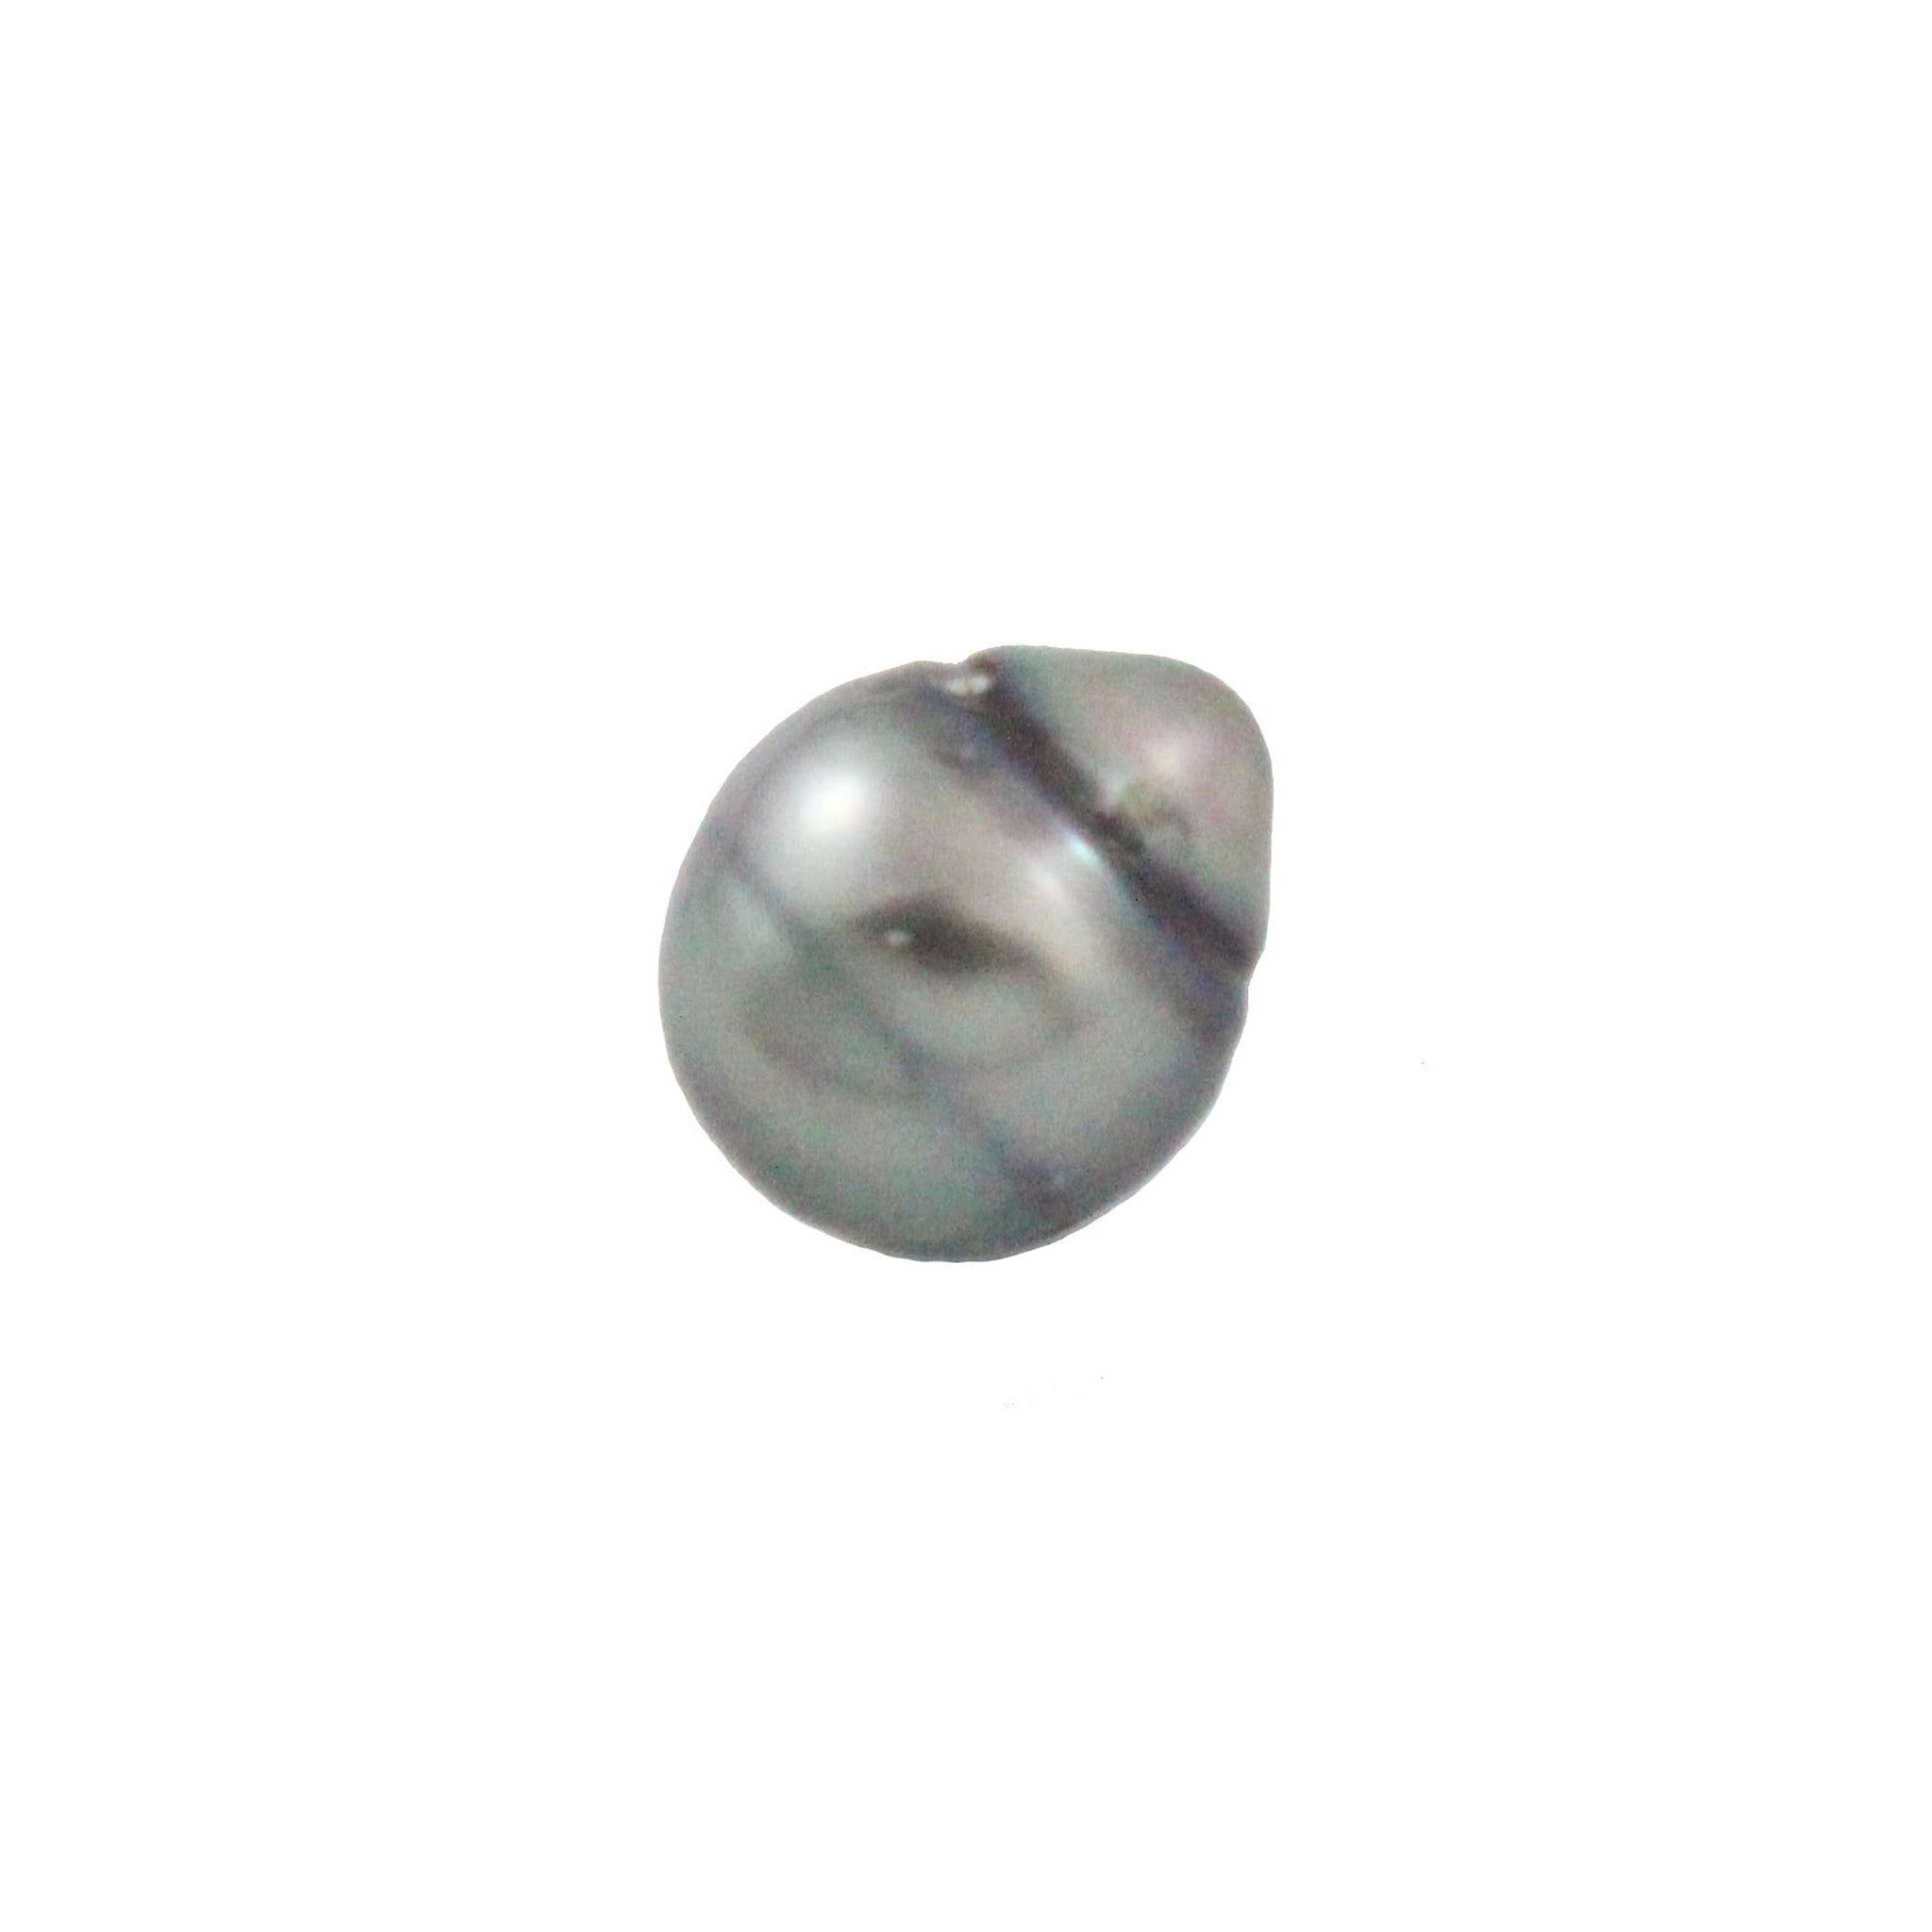 Tahitian pearl undrilled 1.05gr mm 10x8.92mm - Purchase only with custom order - Sarah Hughes - 1